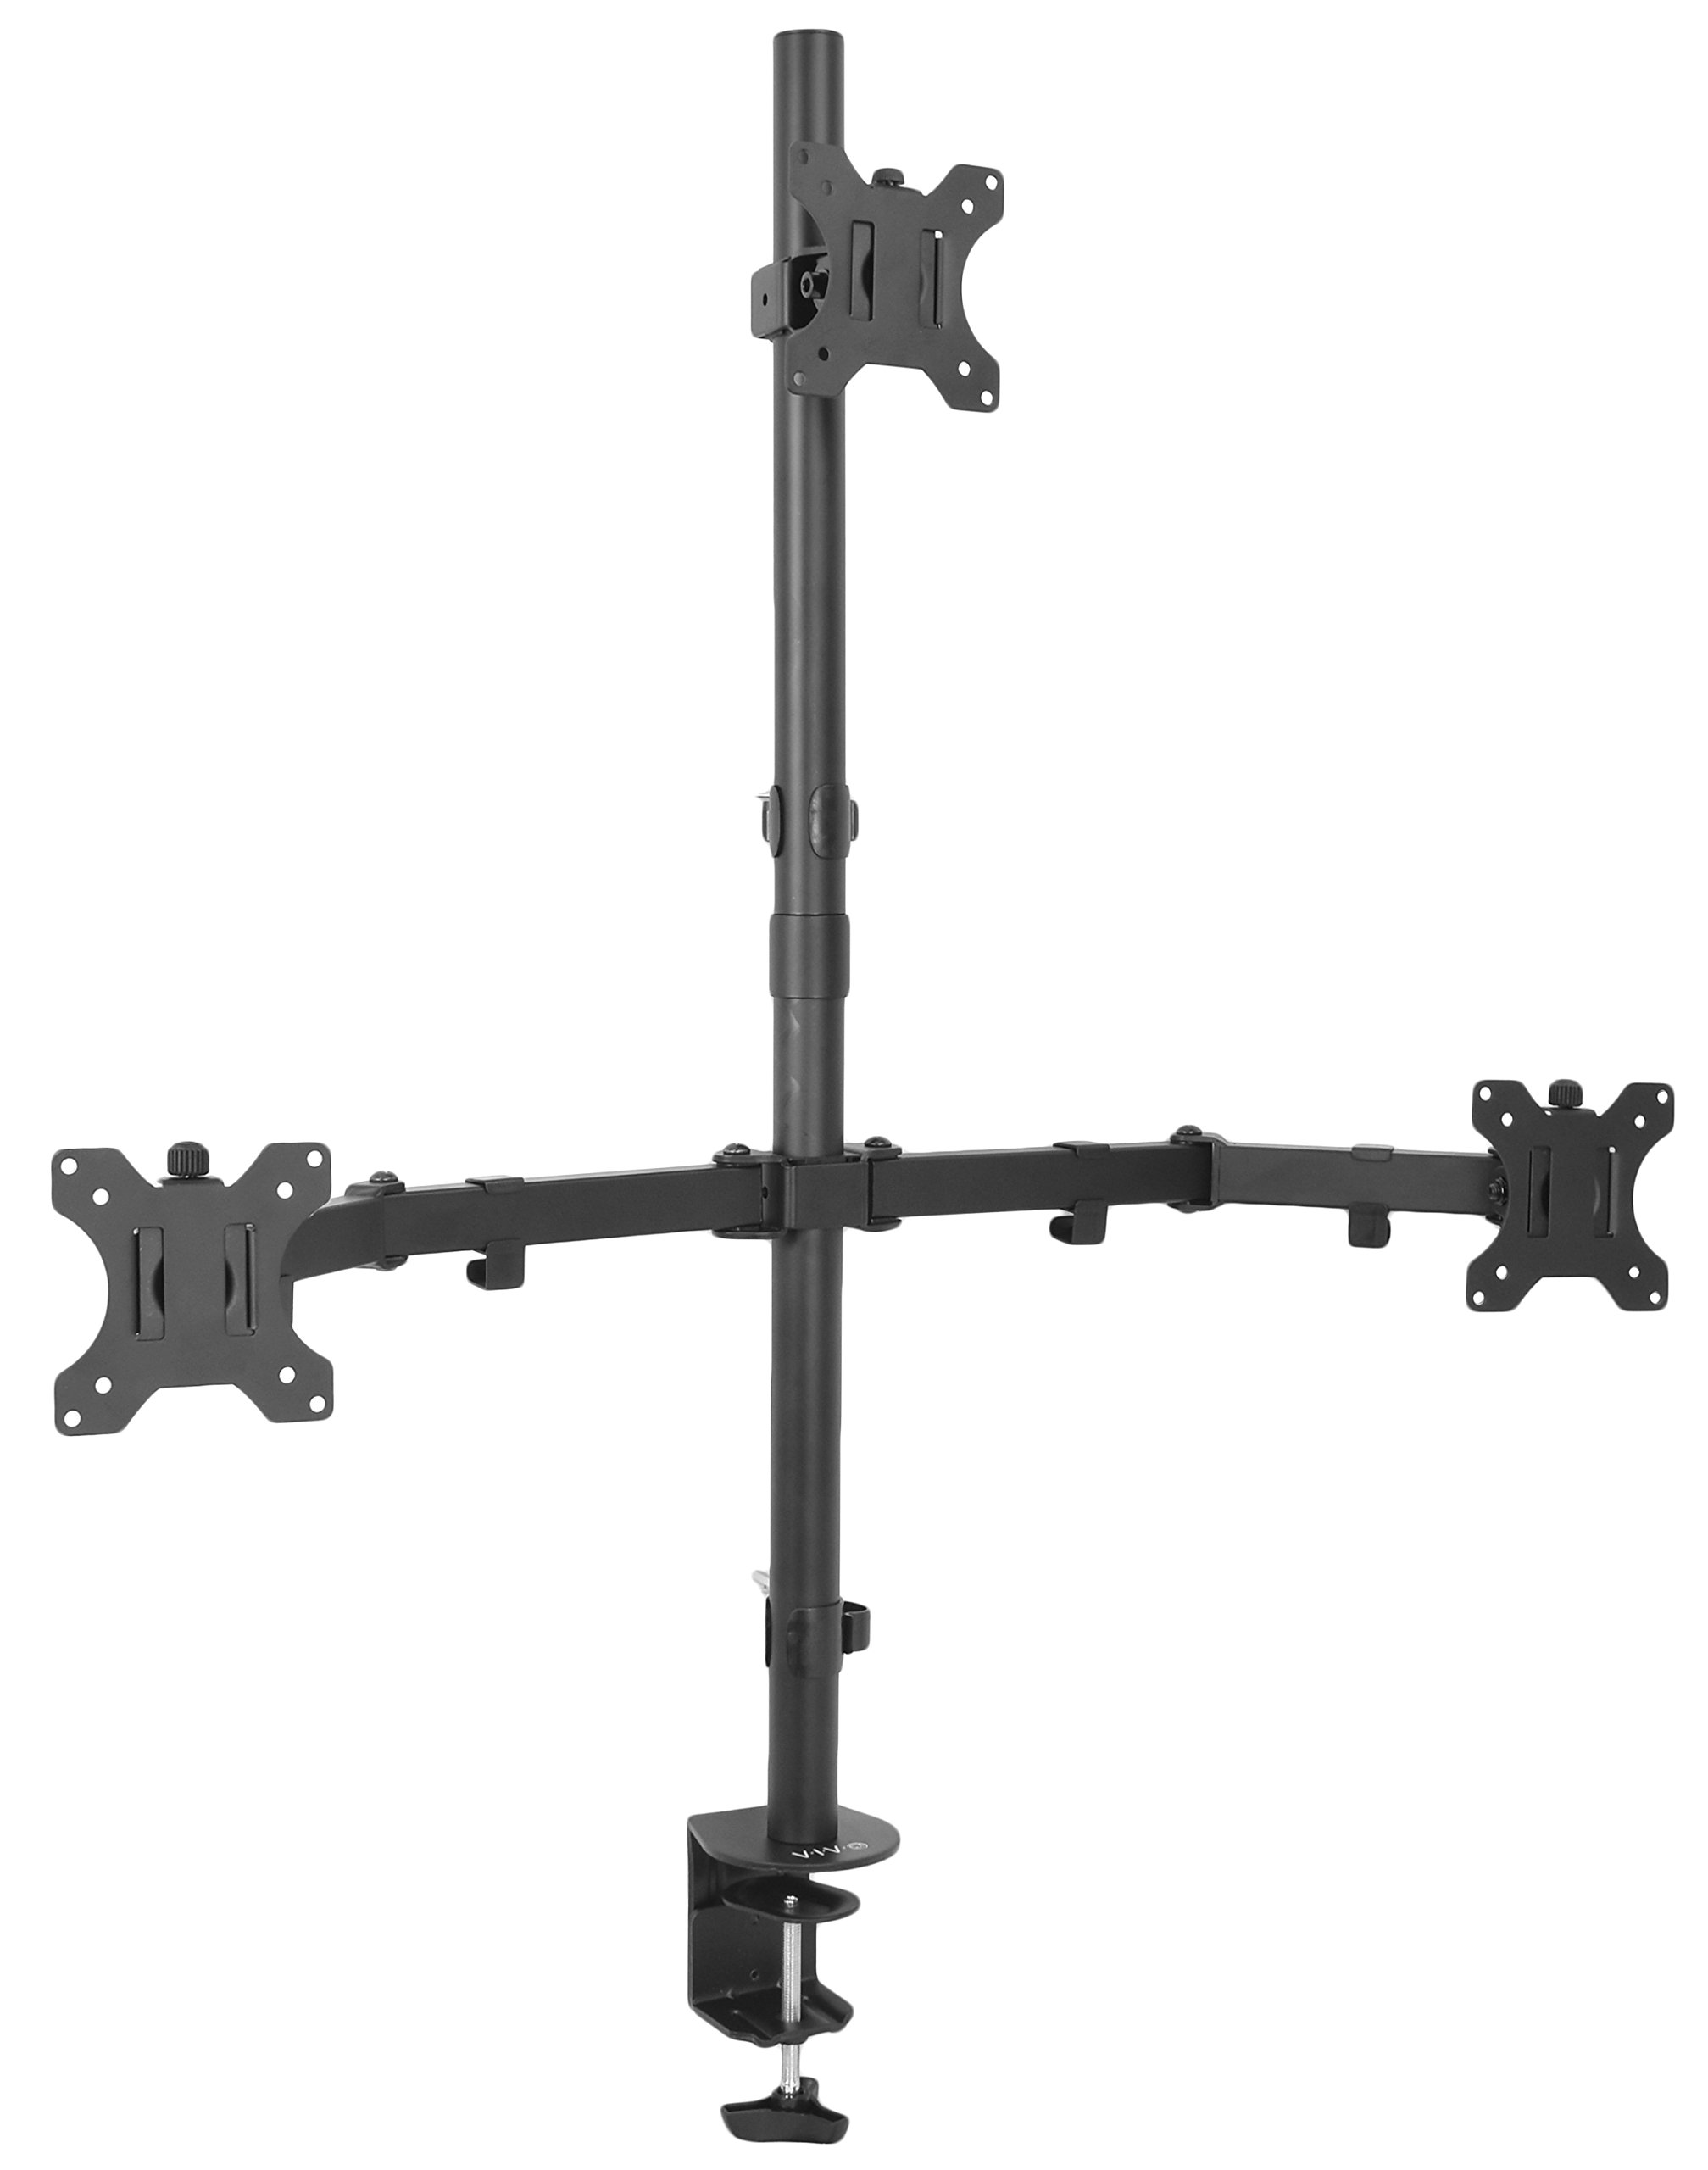 VIVO Triple LCD Monitor Desk Mount Stand Heavy Duty & Fully Adjustable 3 Screens up to 30'' (STAND-V003T)